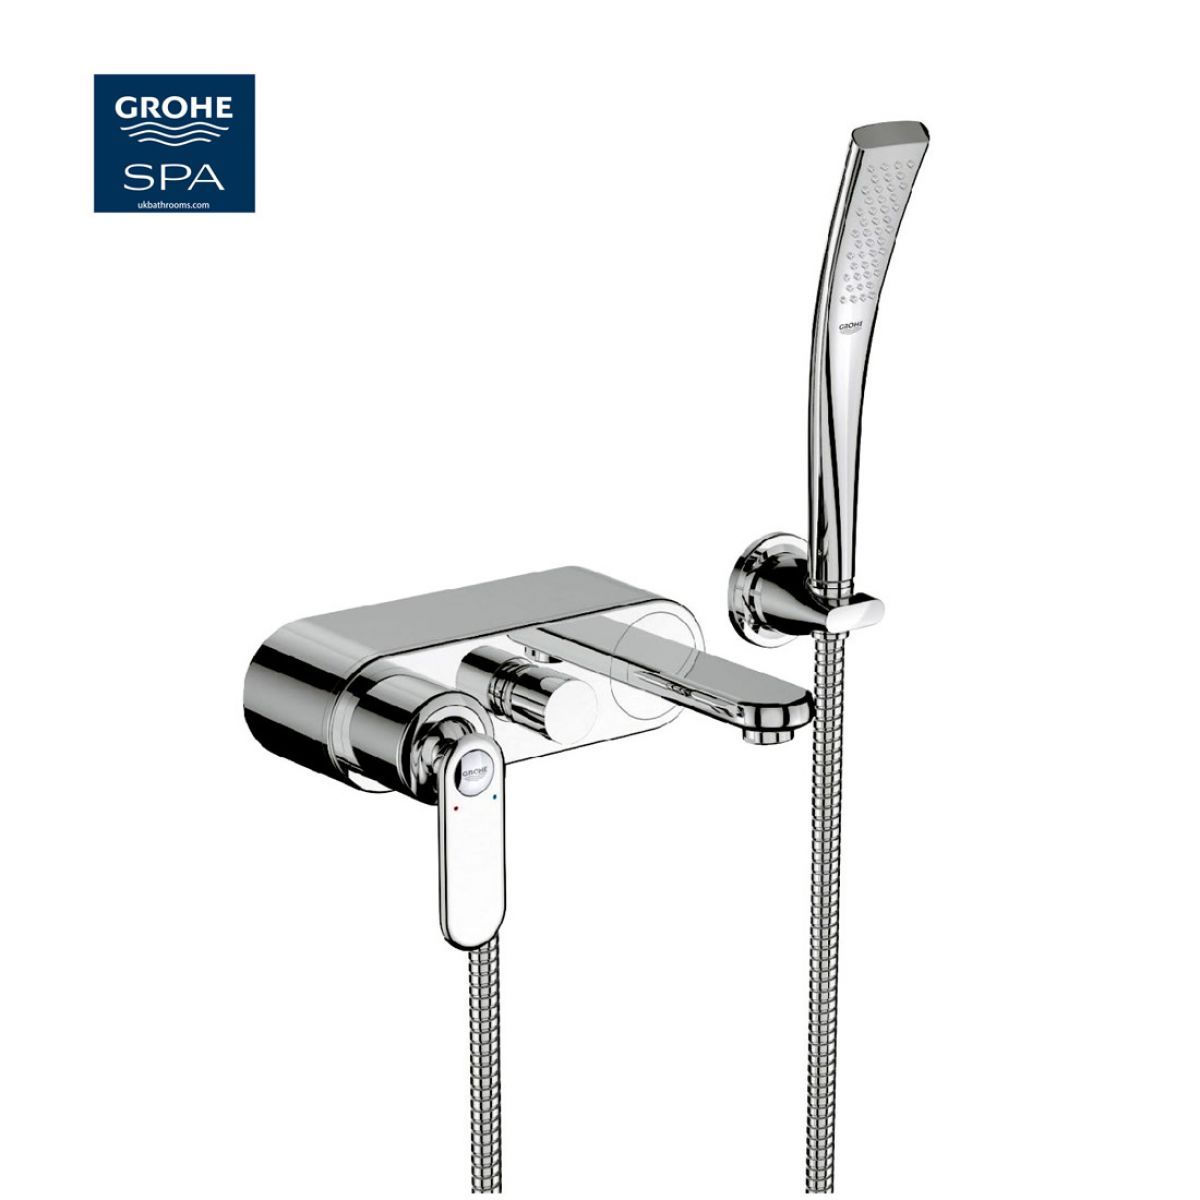 Grohe Veris Wall Mounted Exposed Bath Shower Mixer | Bathroom desire ...